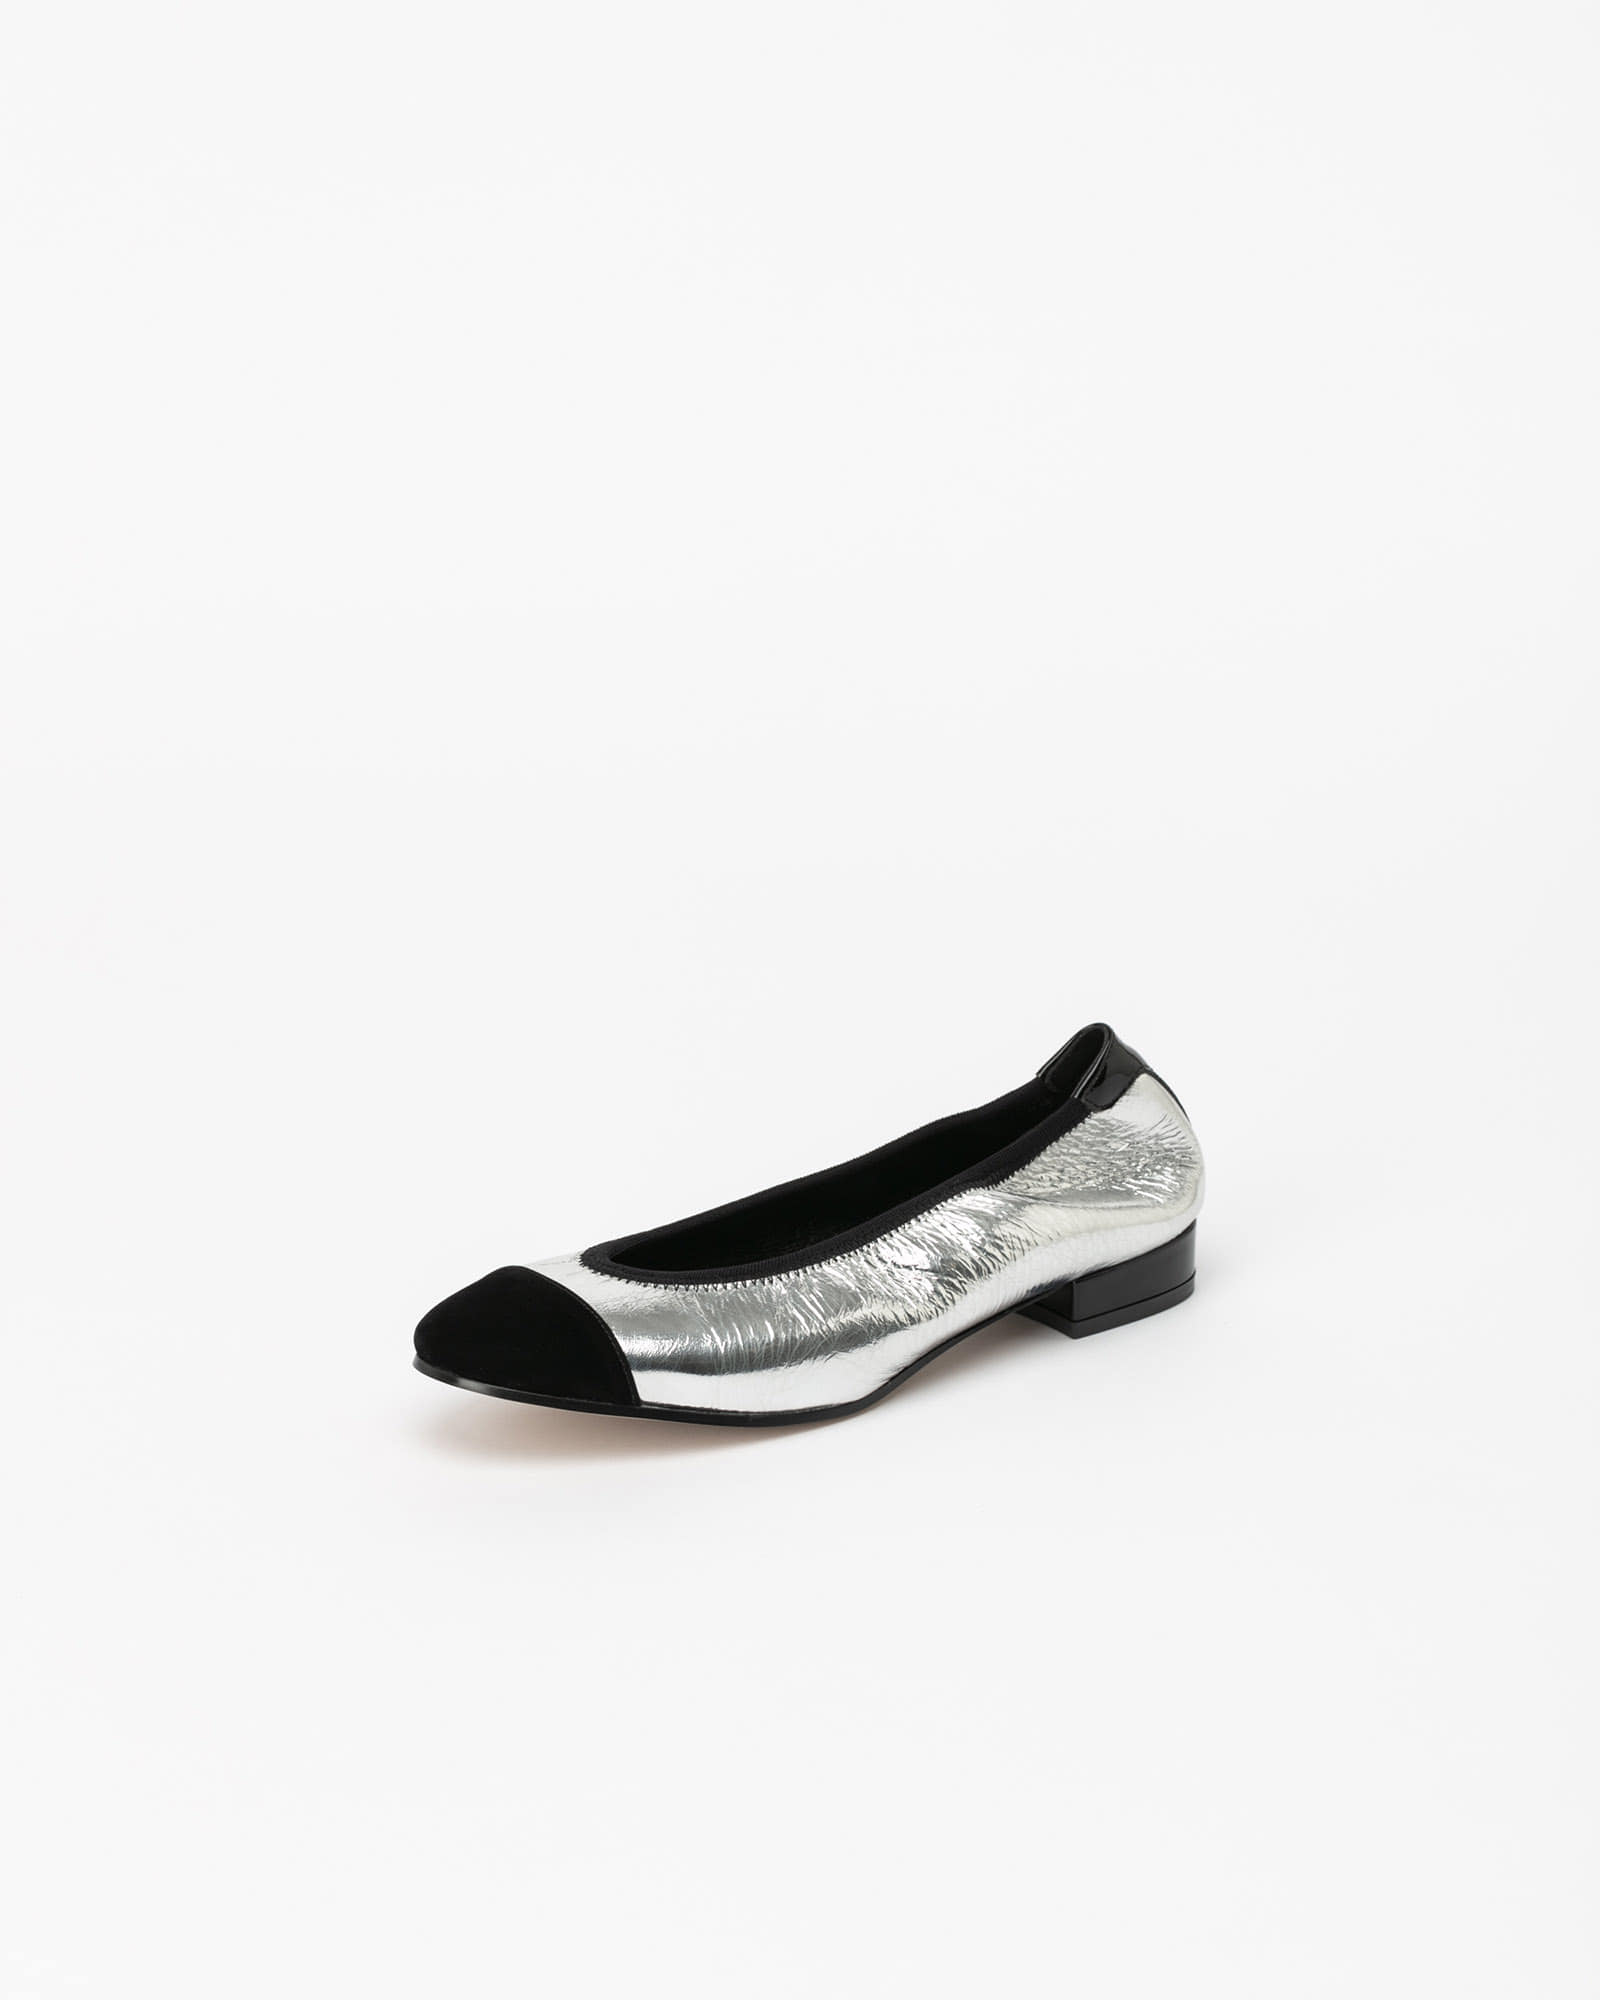 D'amore Flat Shoes in Silver with Black Toe